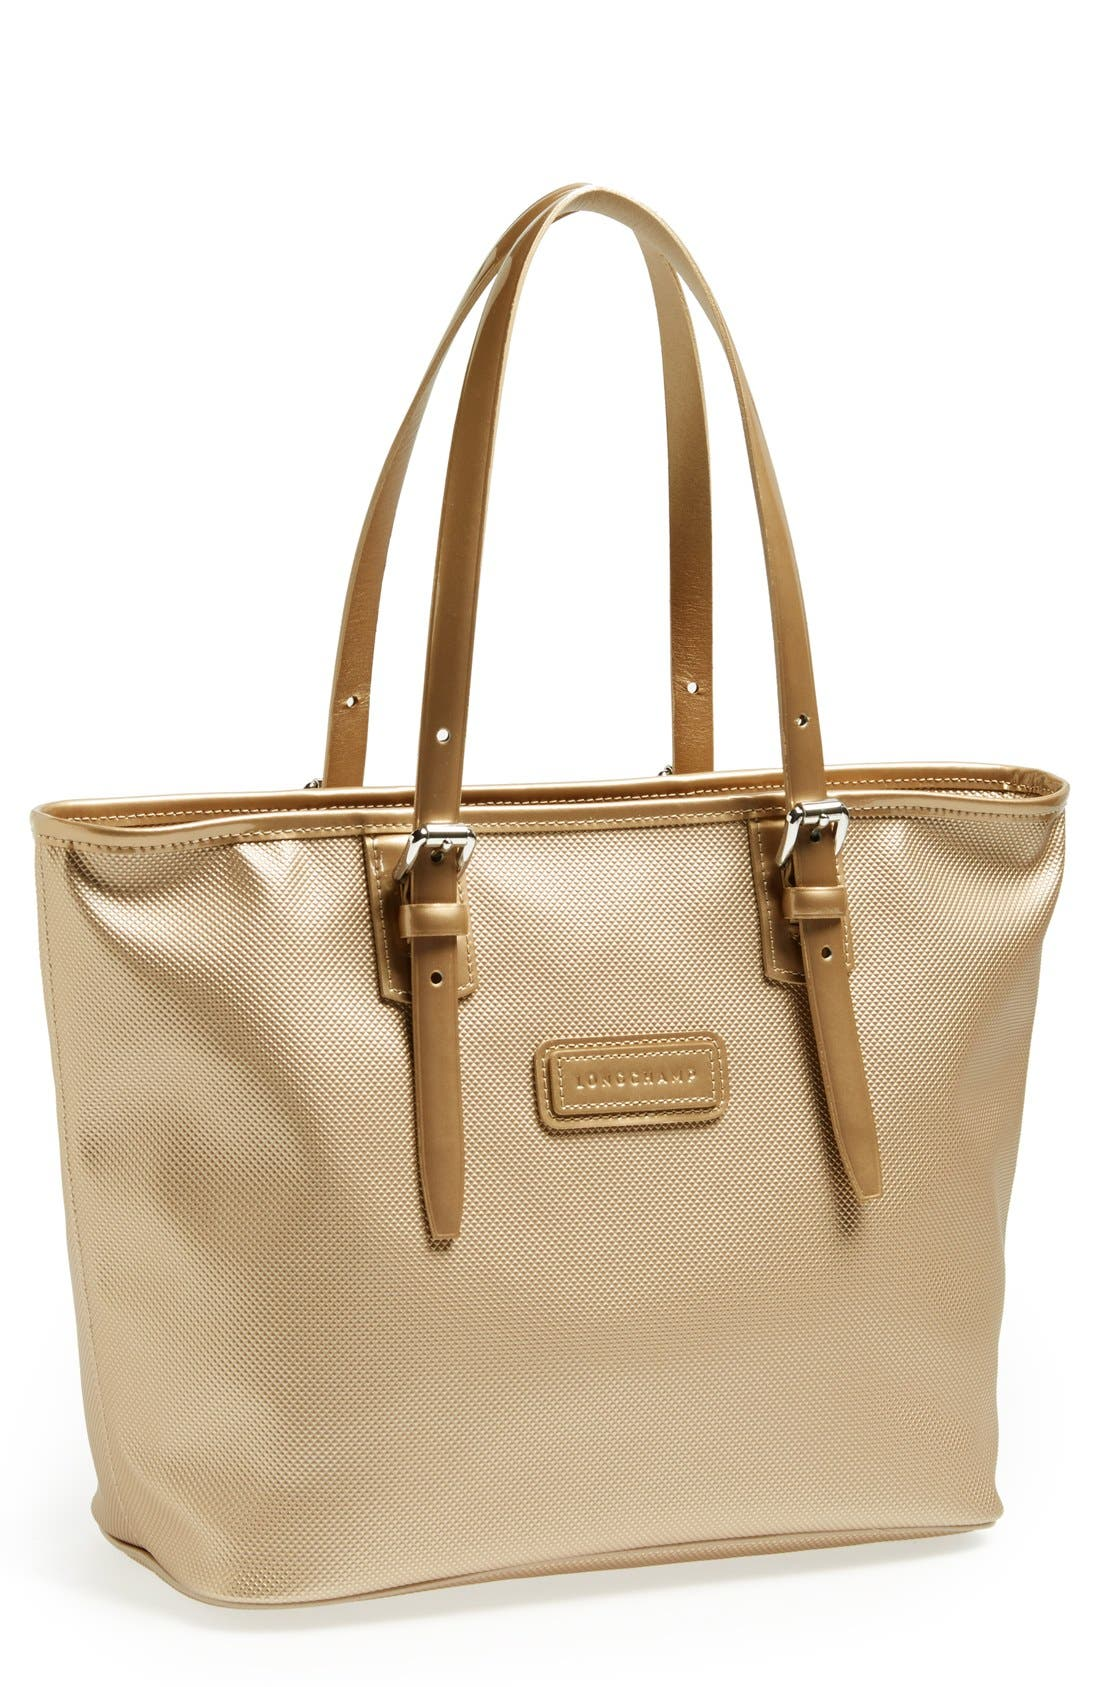 Alternate Image 1 Selected - Longchamp 'Medium Derby' Tote